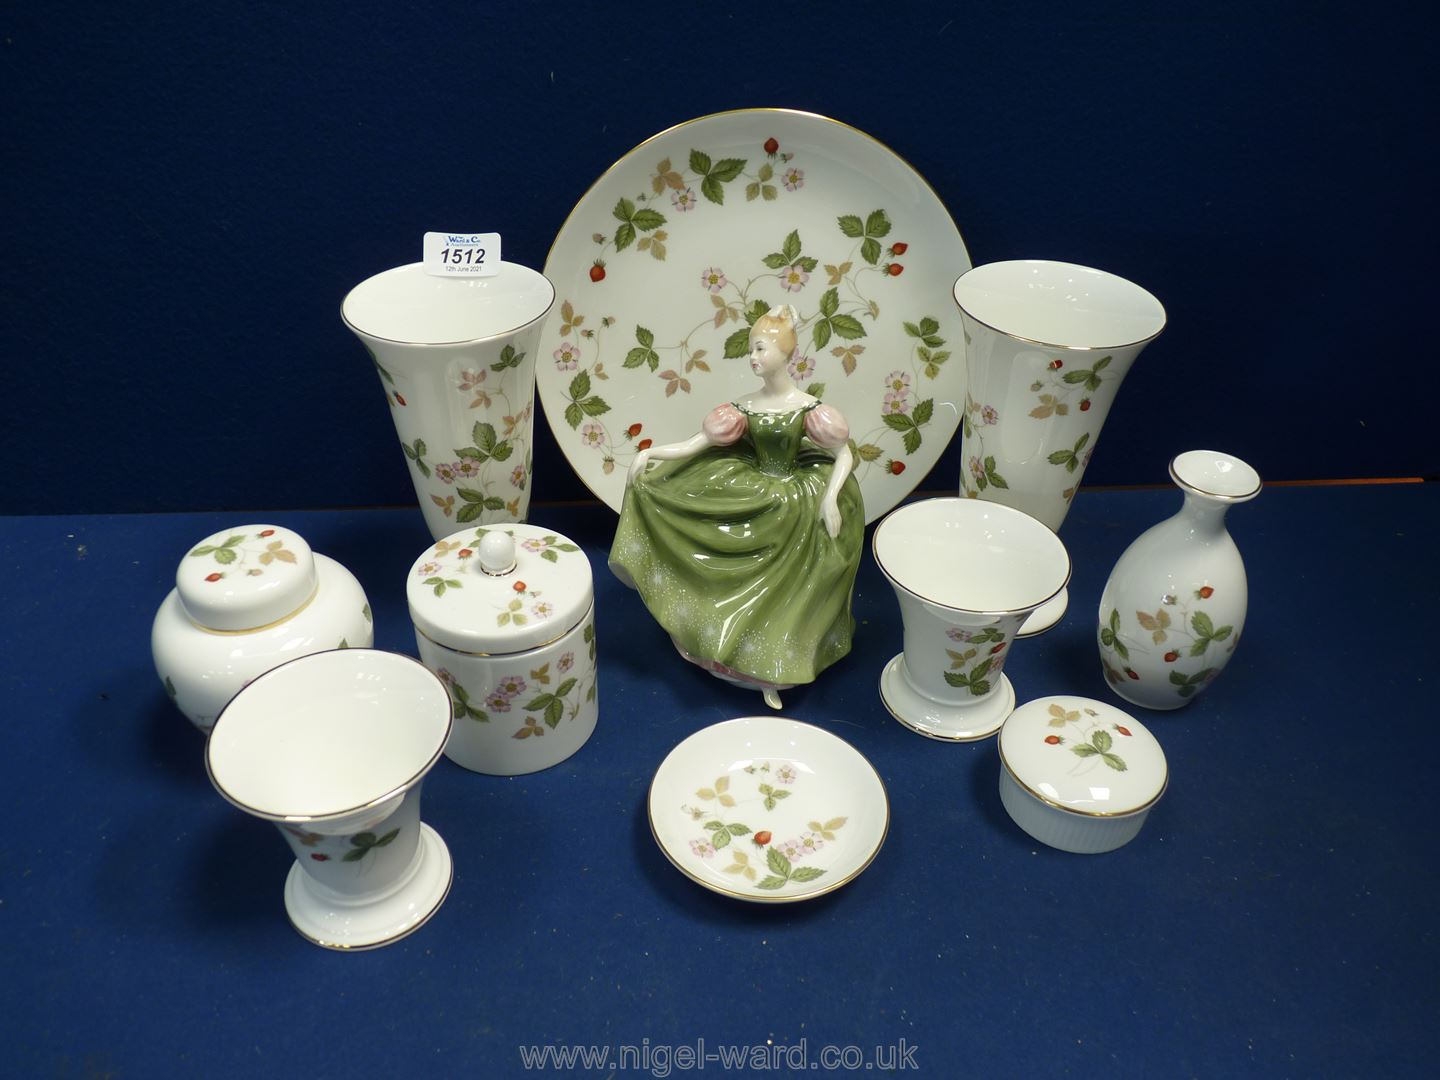 A Royal Doulton figurine 'Michele' 2234, corp 1966 and ten Wedgwood ''wild strawberry'' pieces.